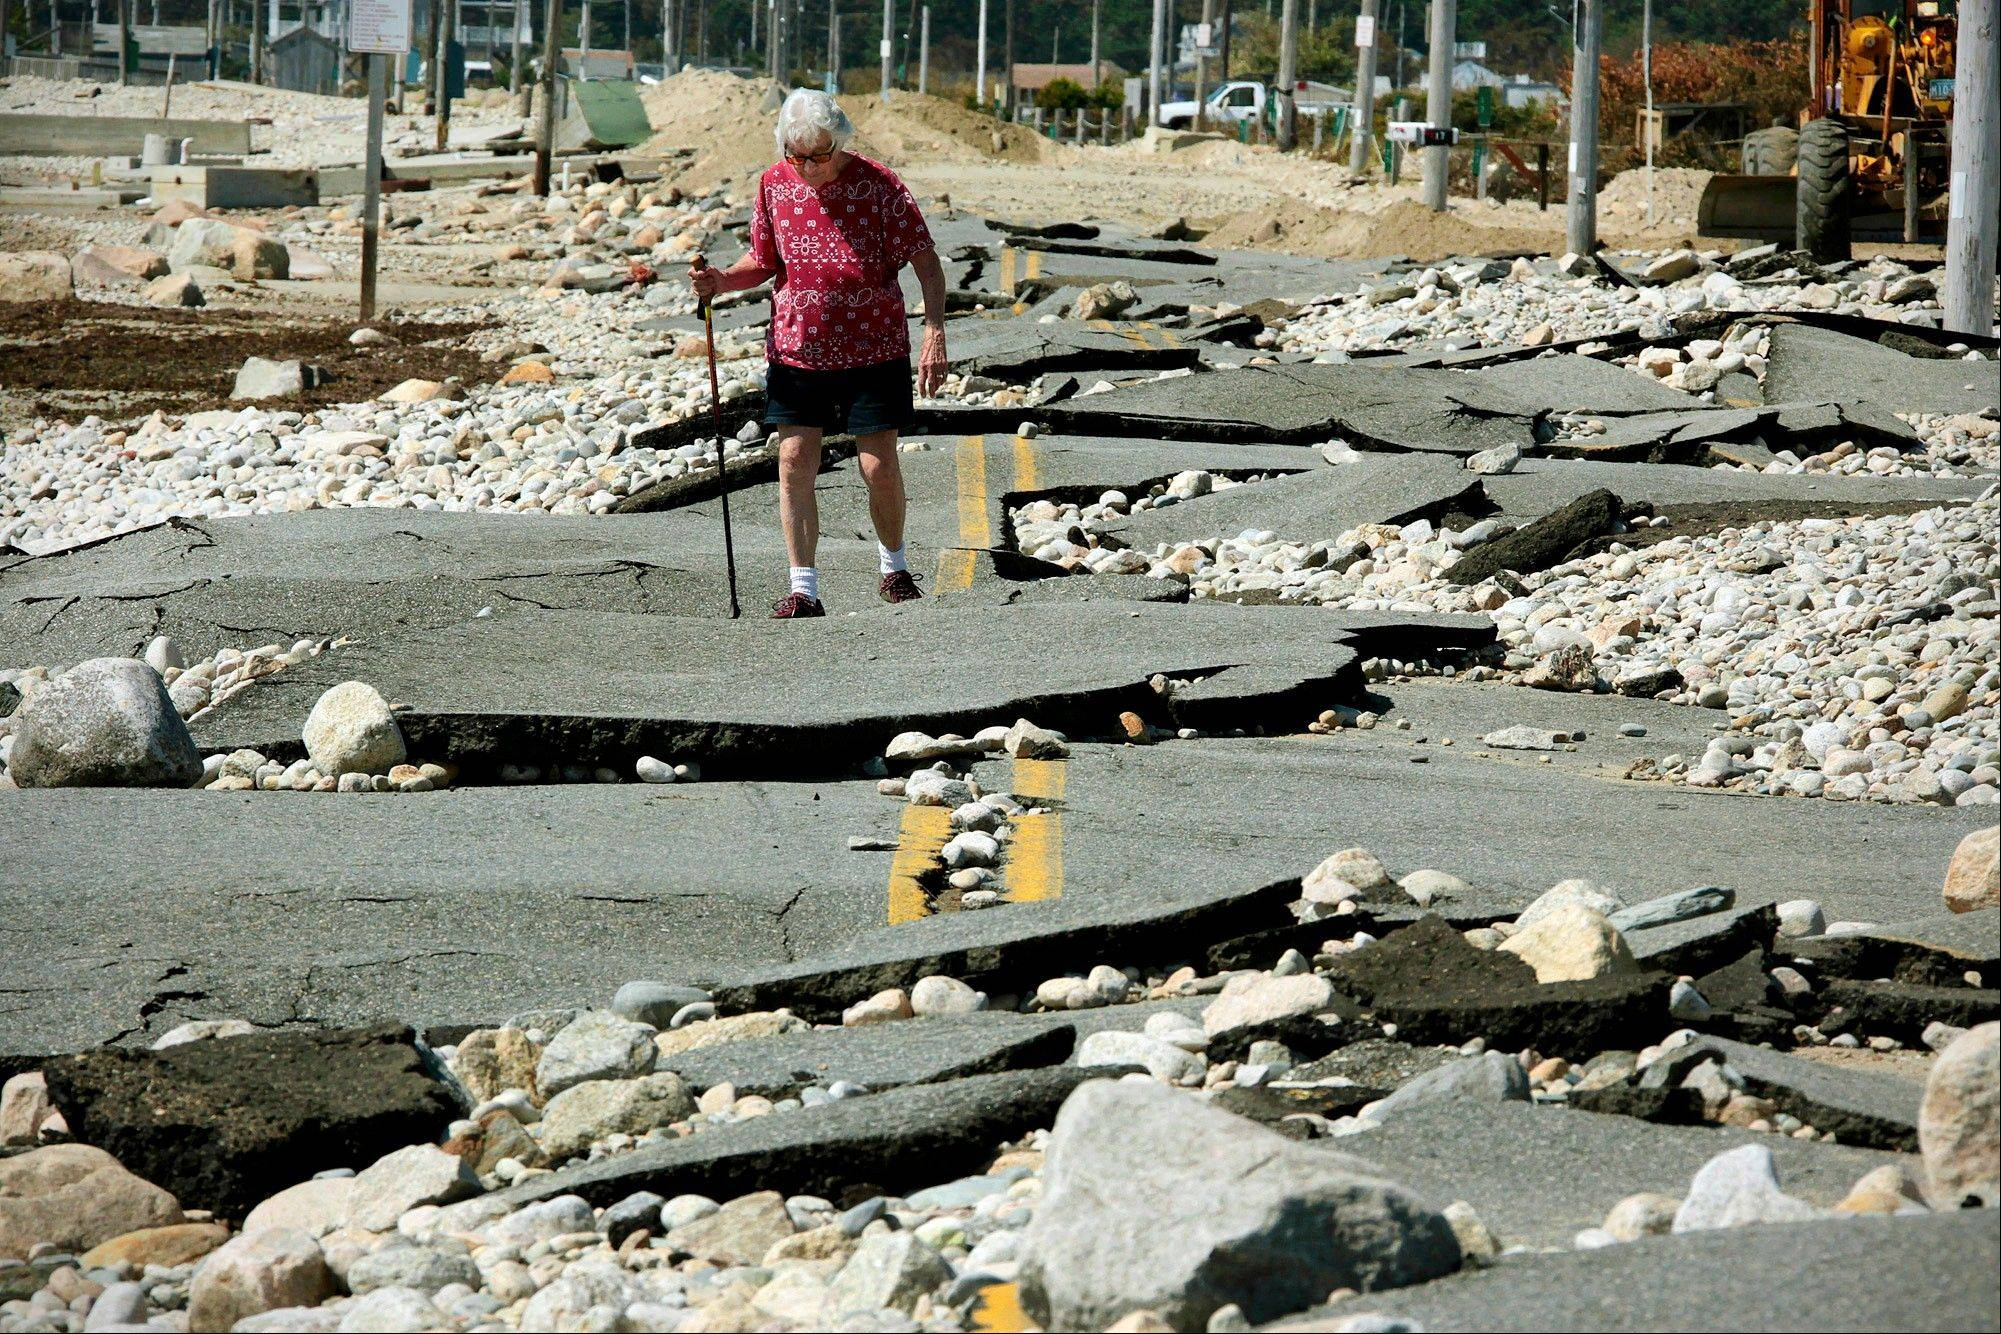 Pat Richard tries to make her way along what remains of East Beach Road in Westport, Mass., Wednesday. The beach-front road was shattered by high surf and winds when Tropical Storm Irene swept the area on Sunday.